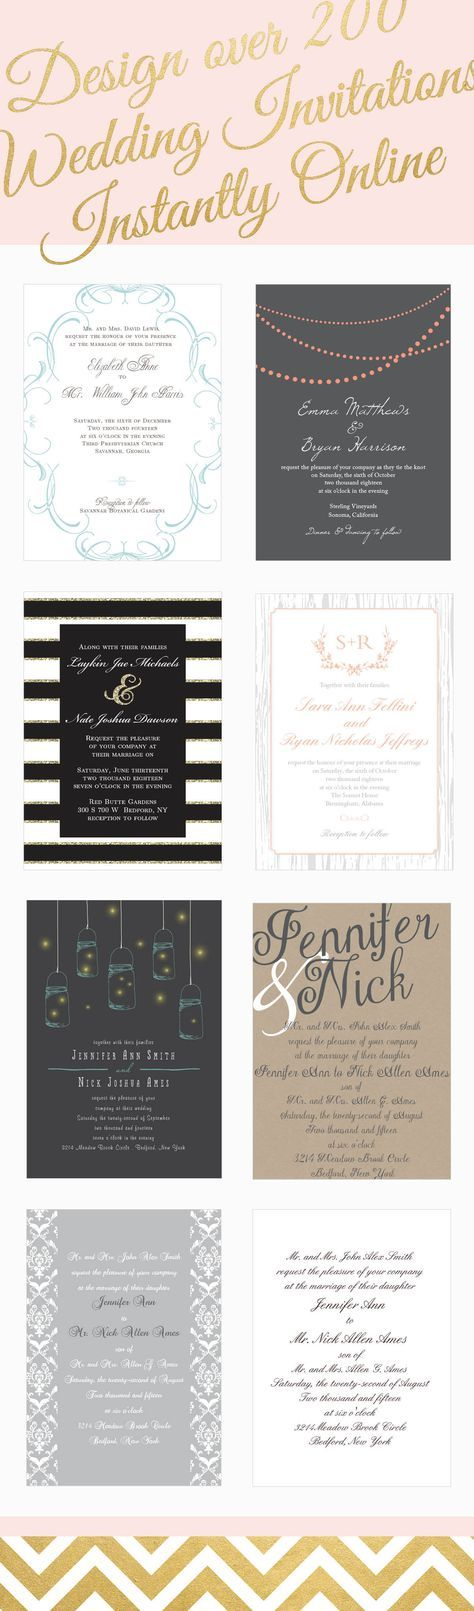 how much do invitations for wedding cost%0A If you enjoy great invitations you will enjoy oursite